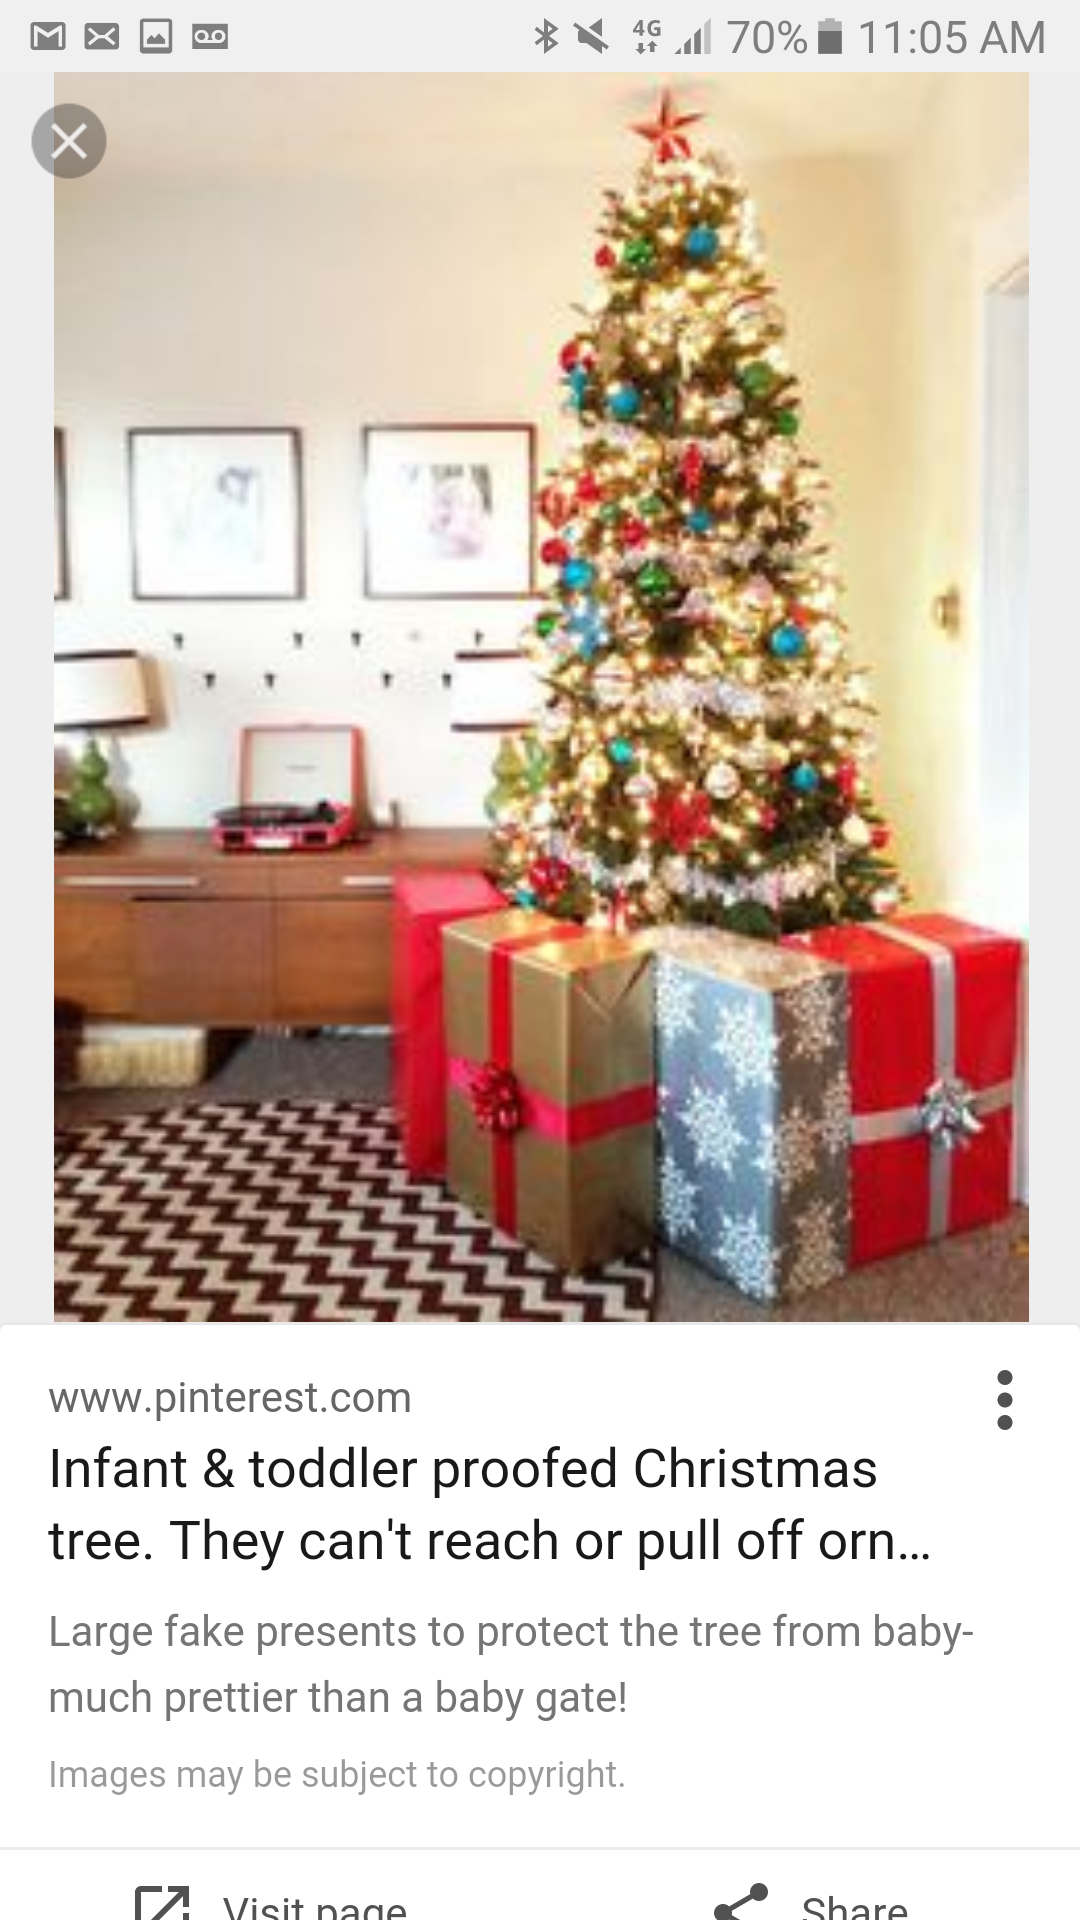 screenshot_20161129 110555png - Baby Gate For Christmas Tree